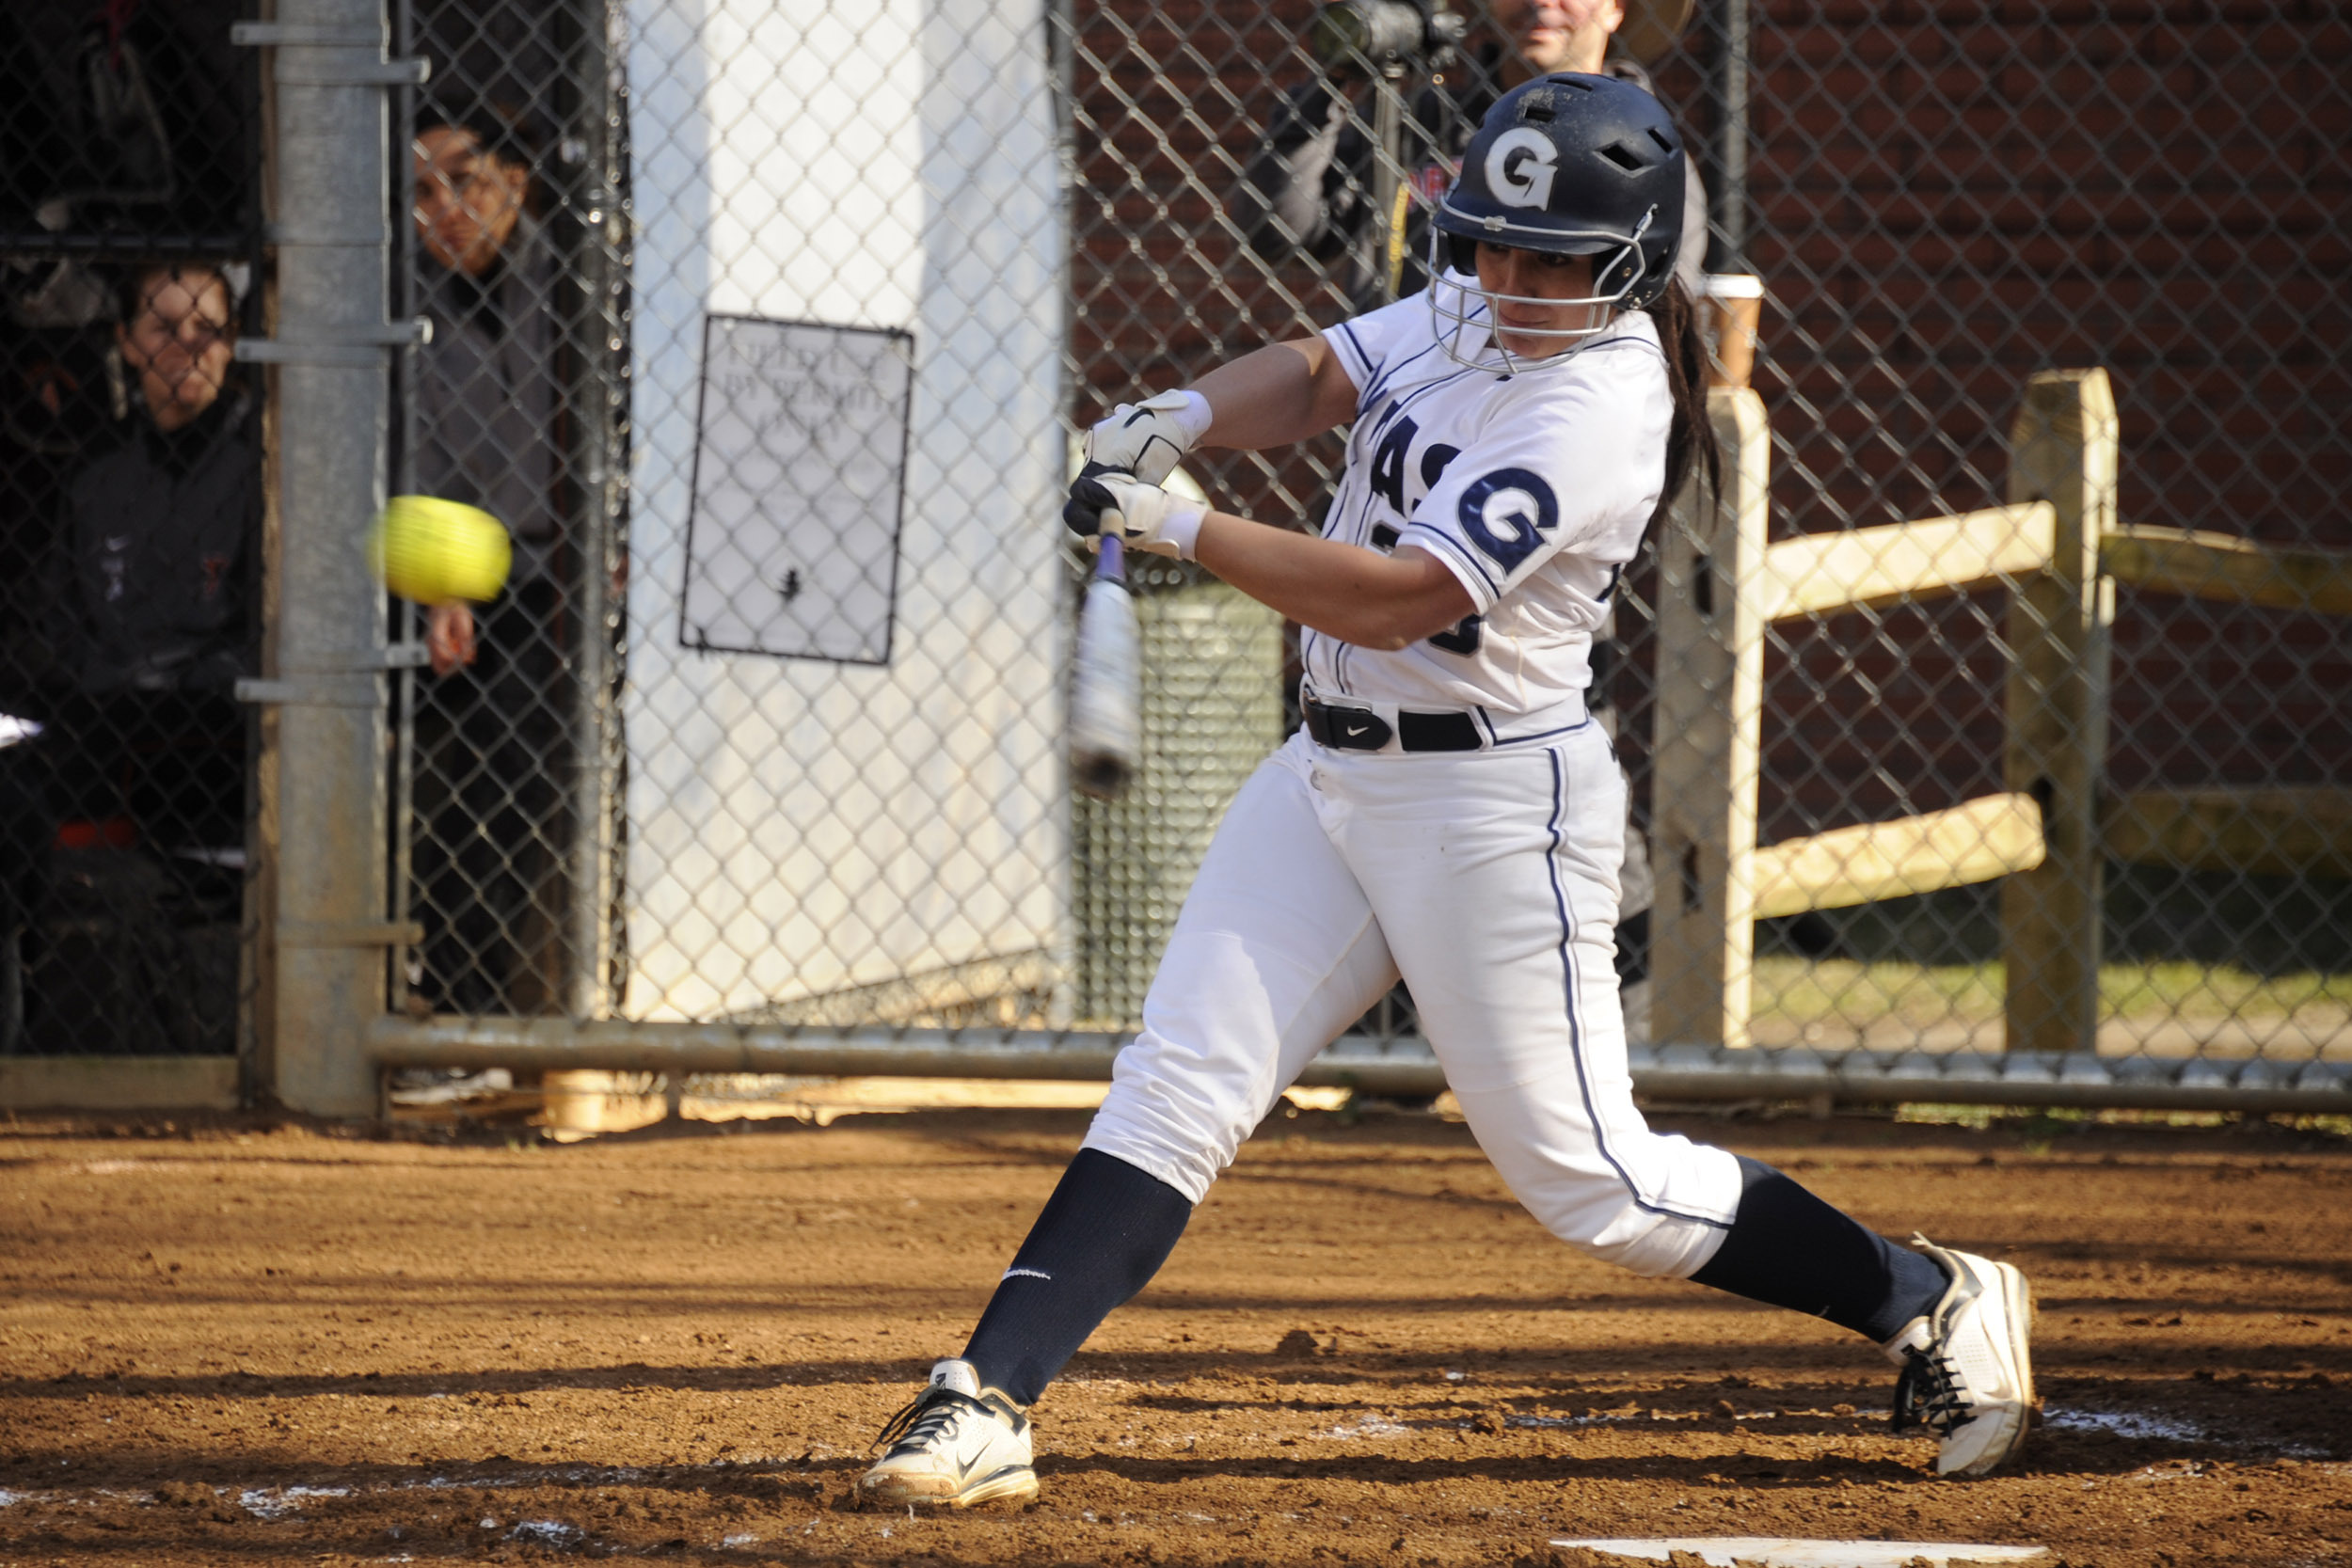 Samantha Giovanniello hit a grand slam to help the Hoyas salvage a split in the BIG EAST series.